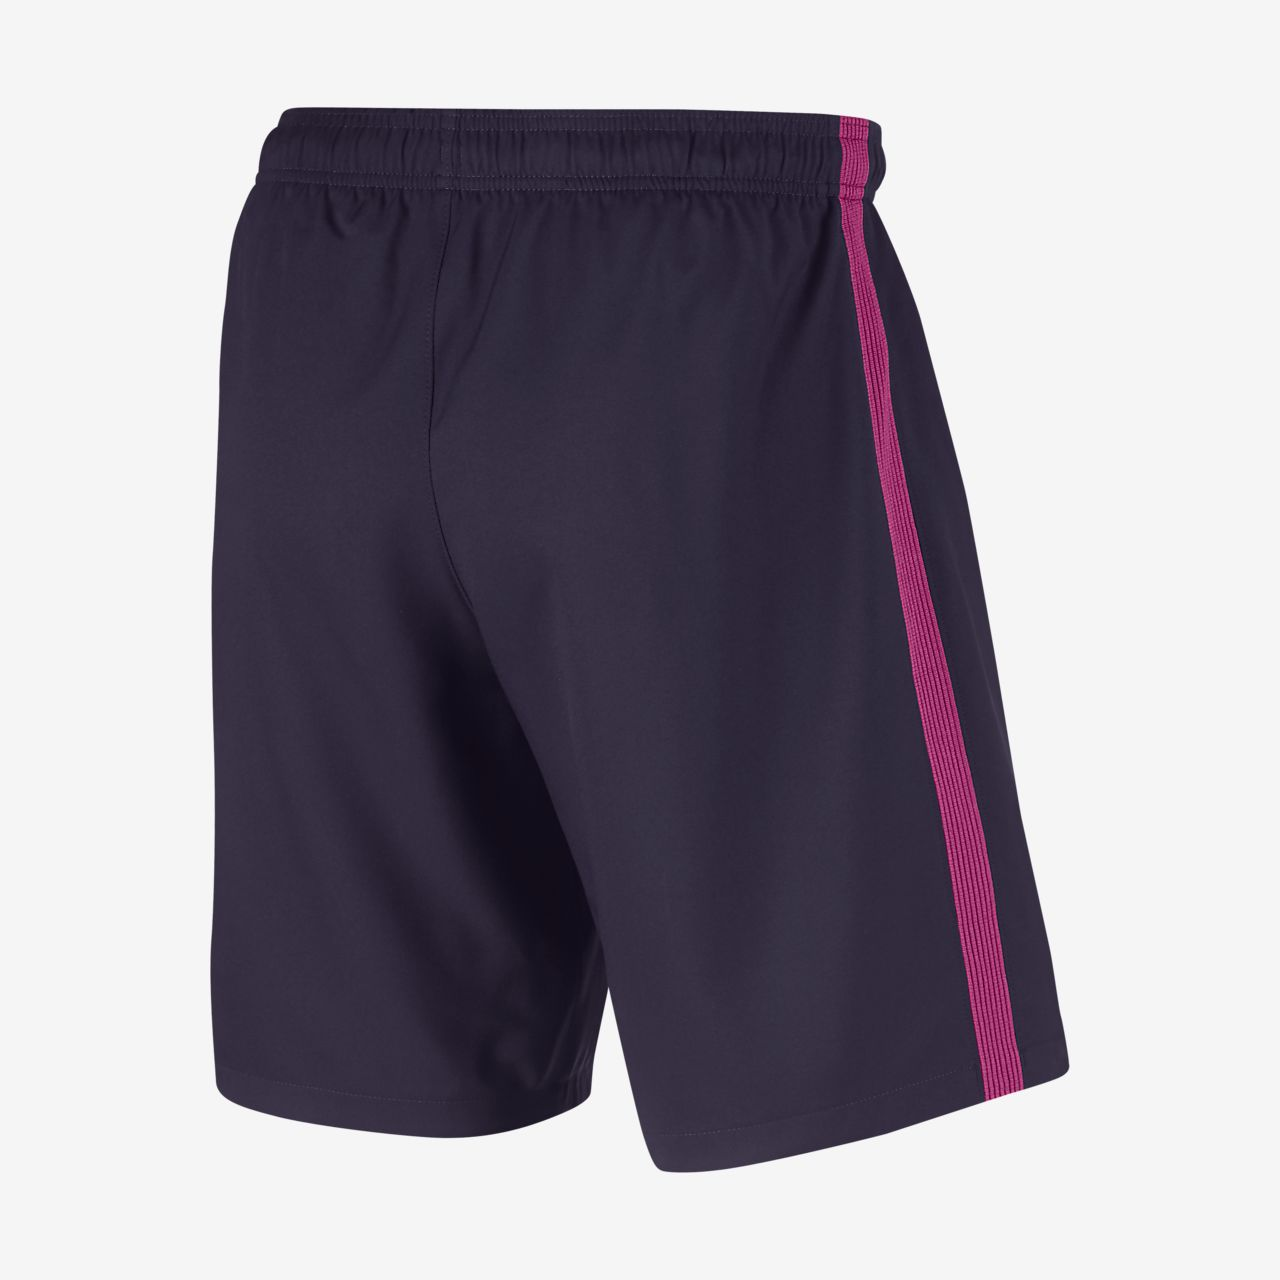 ... 2016/17 F.C.Barcelona Stadium Men's Football Shorts